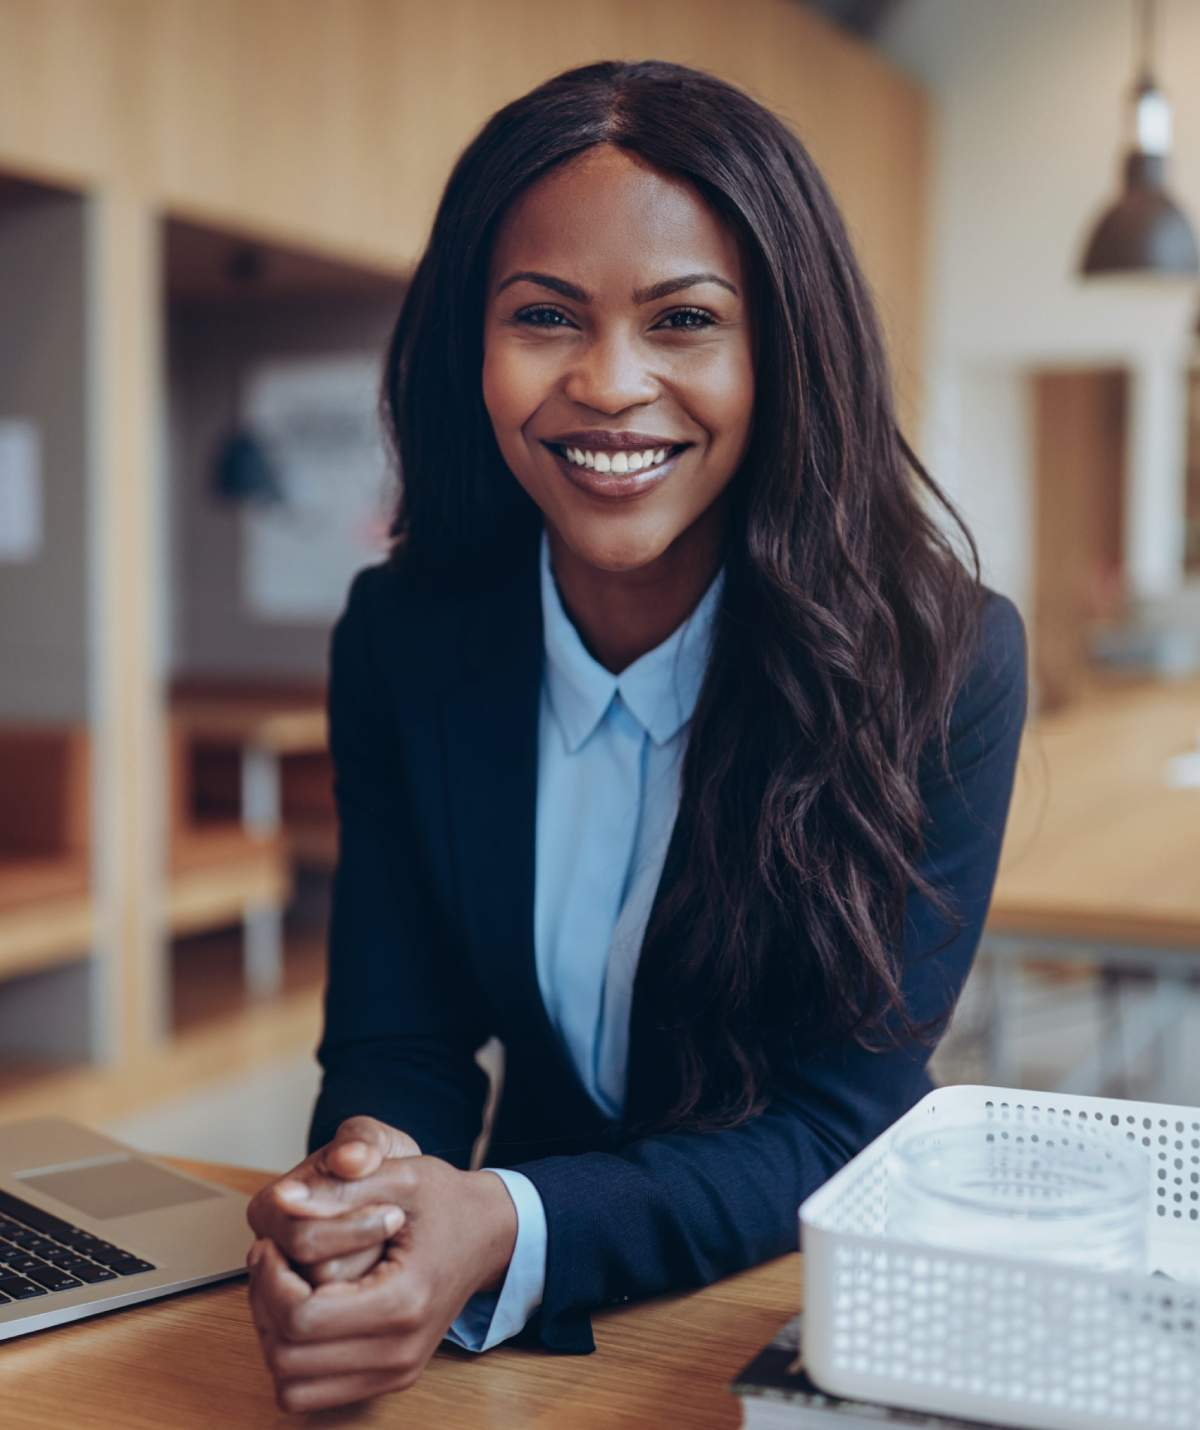 Smiling young African American businesswoman working in an office